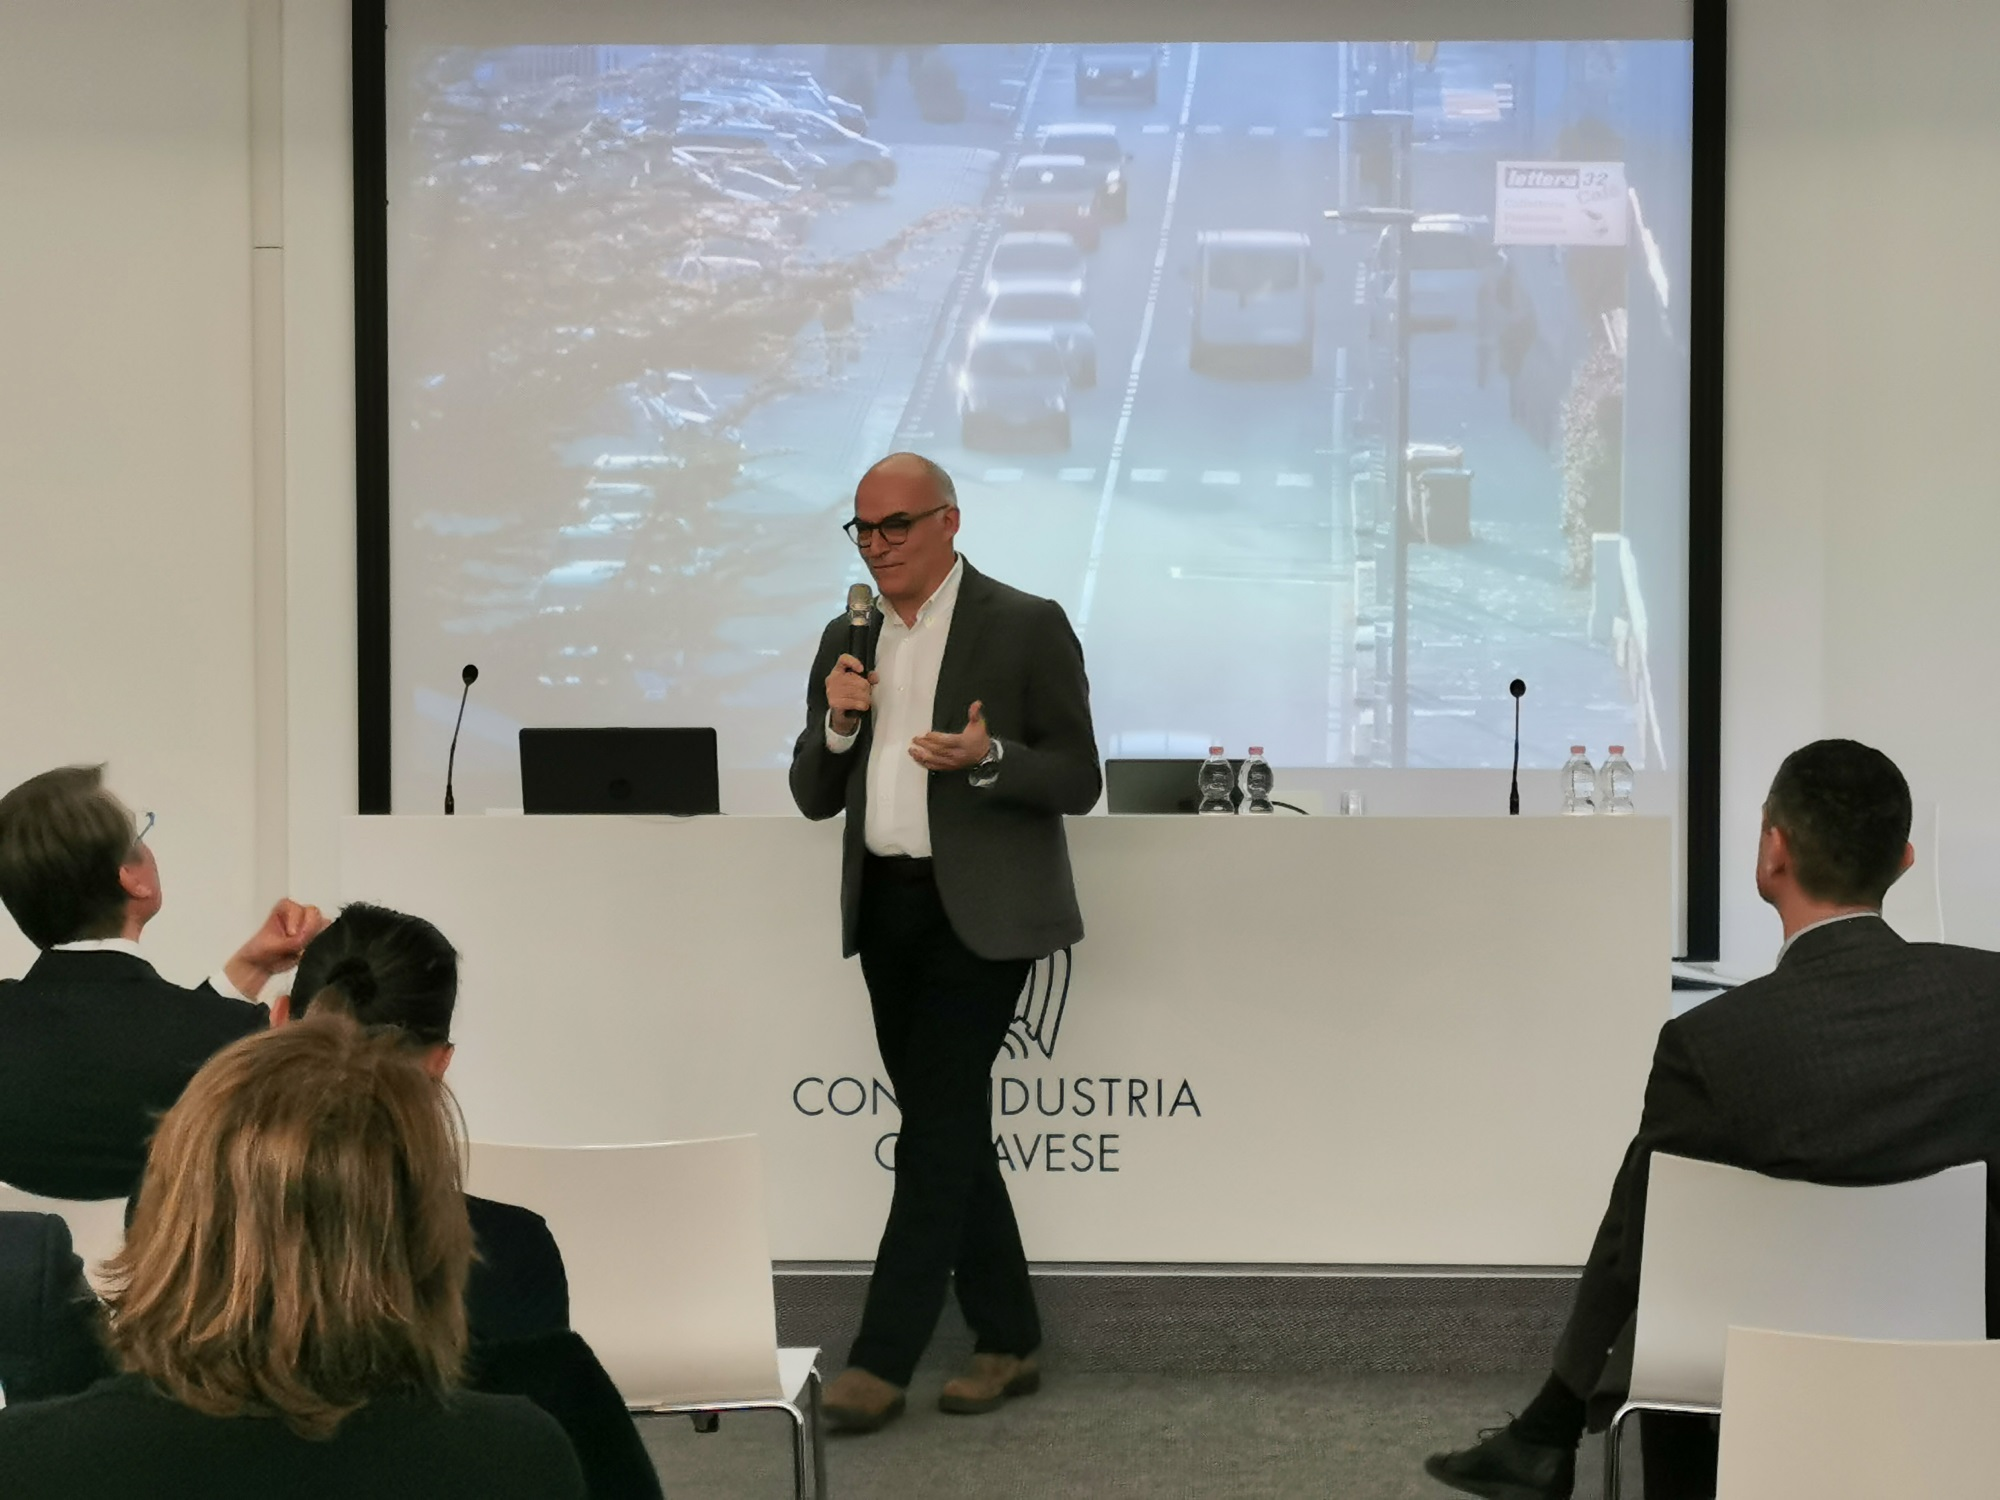 ICONA and ComoNExT – Innovation Hub have signed a partnership for the ex Olivetti Factories Regeneration Plan in via Jervis